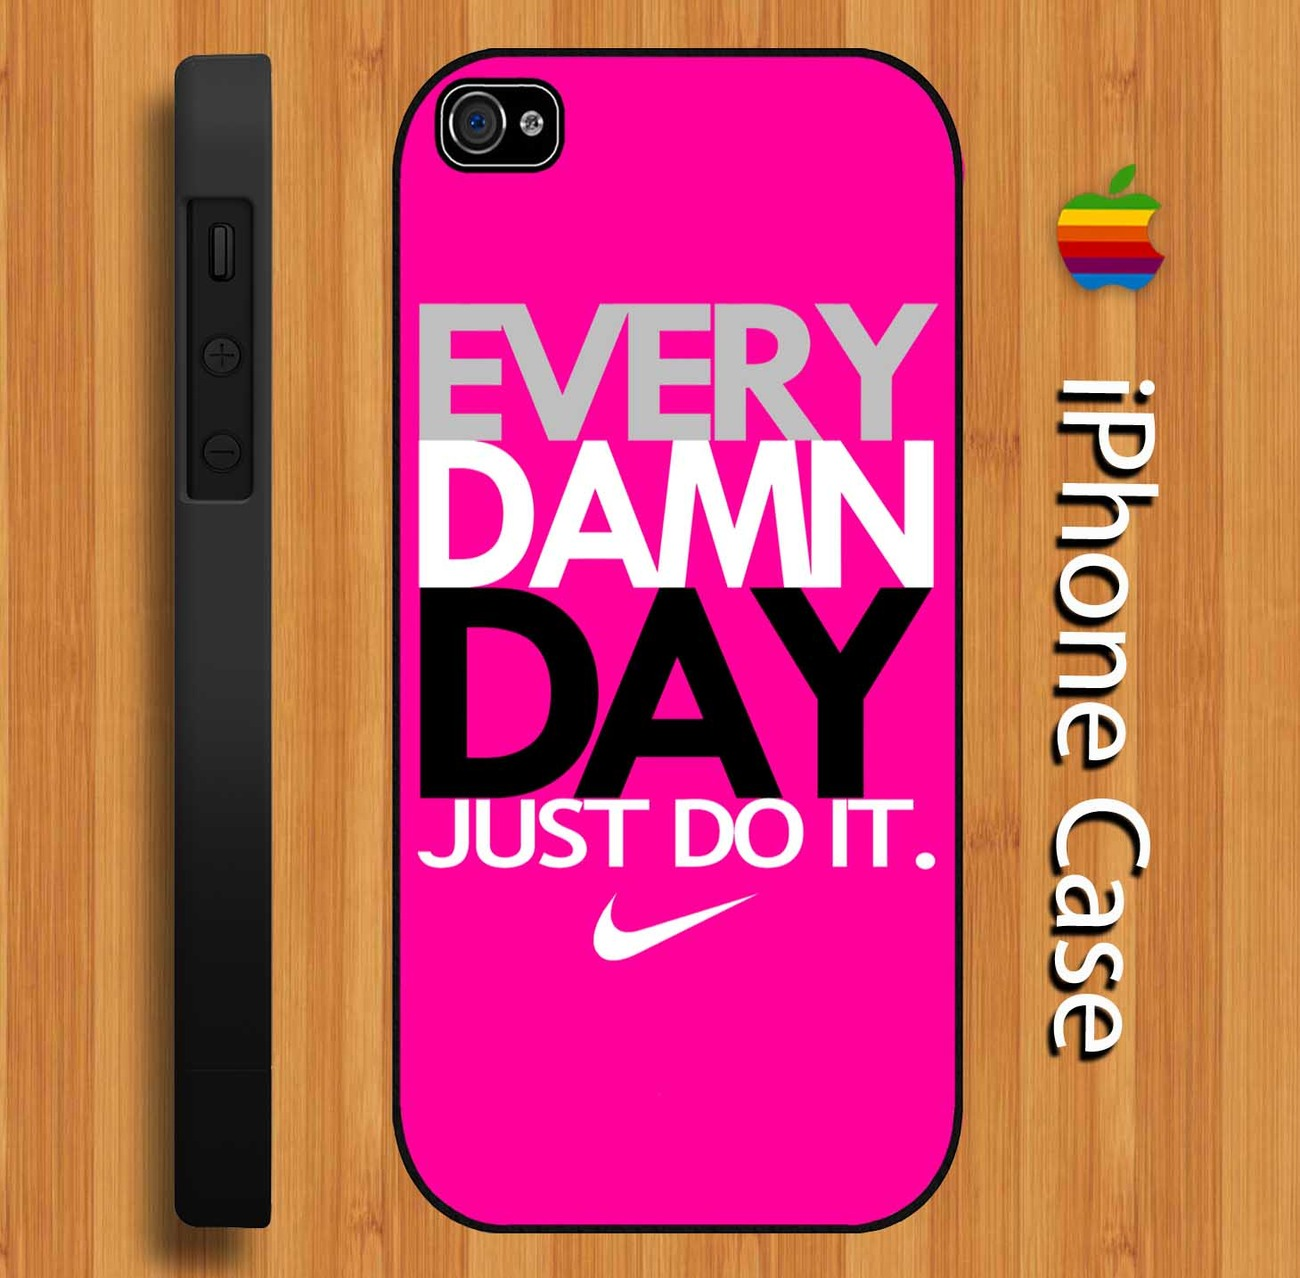 Every Damn Day Just Do It Nike Wallpaper Every Damn Day Wallpap...